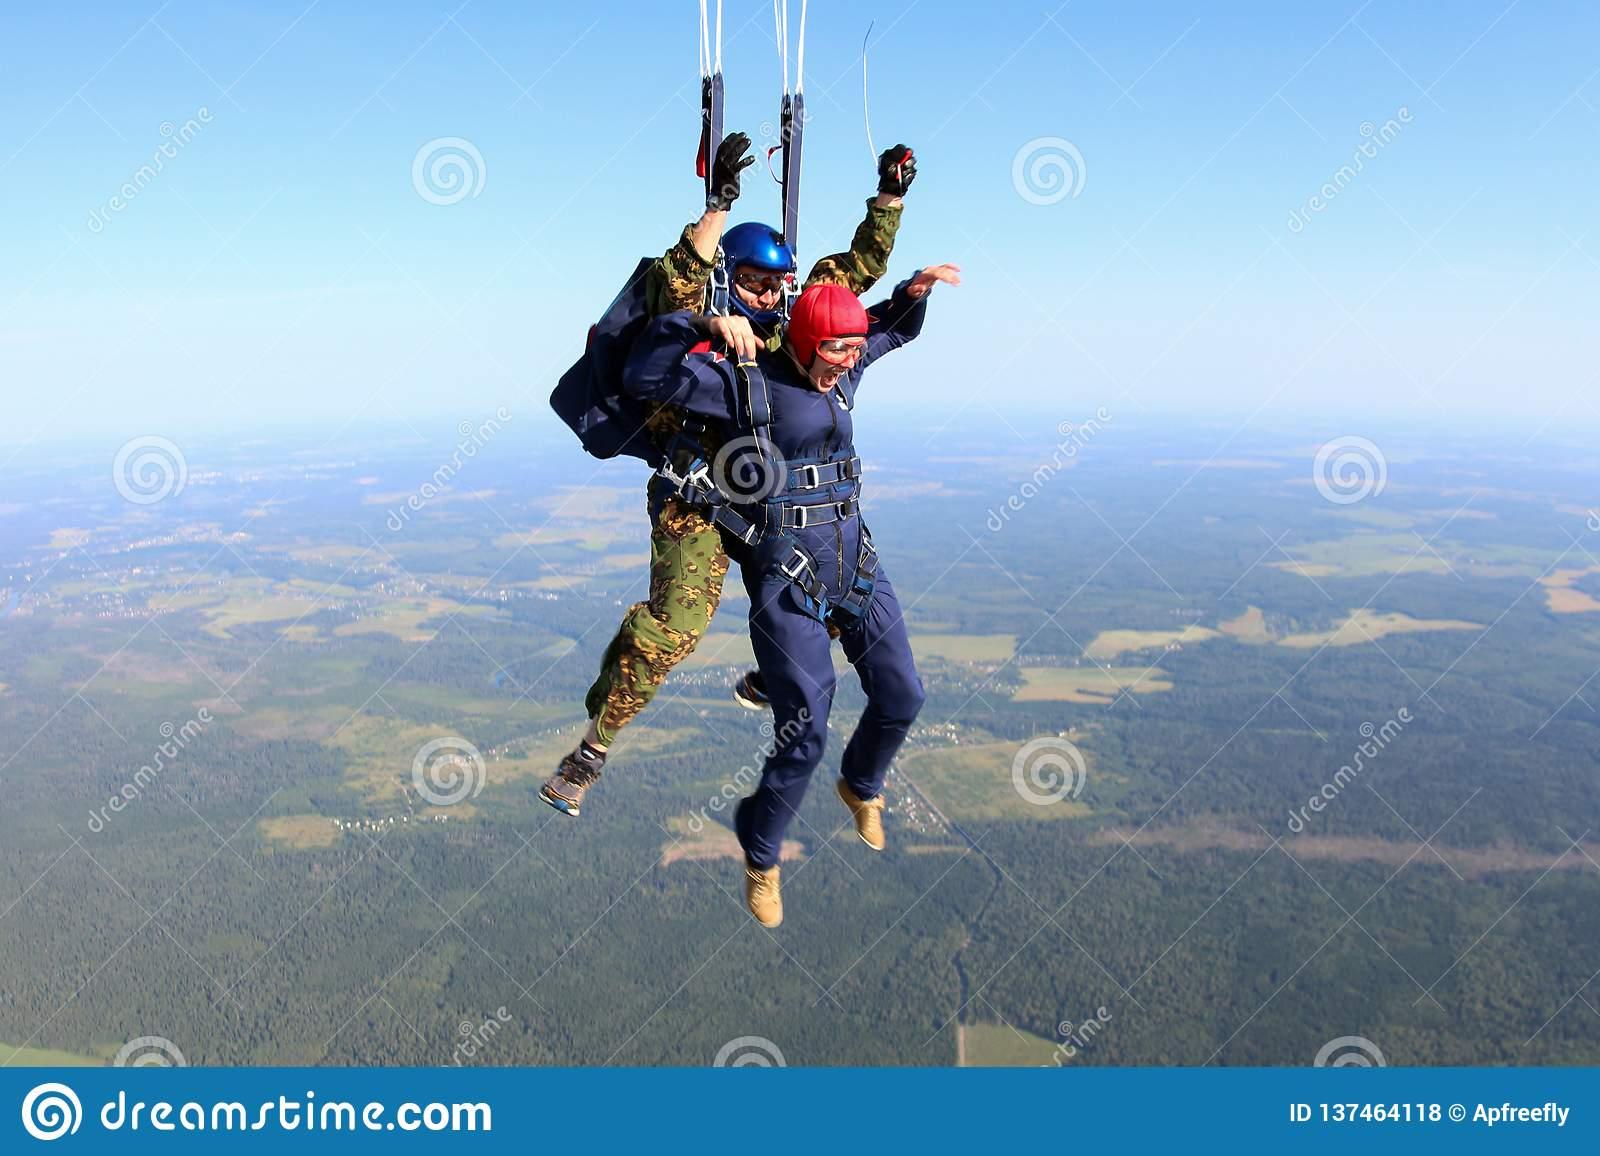 Skydiving. The moment of parachute deployment.